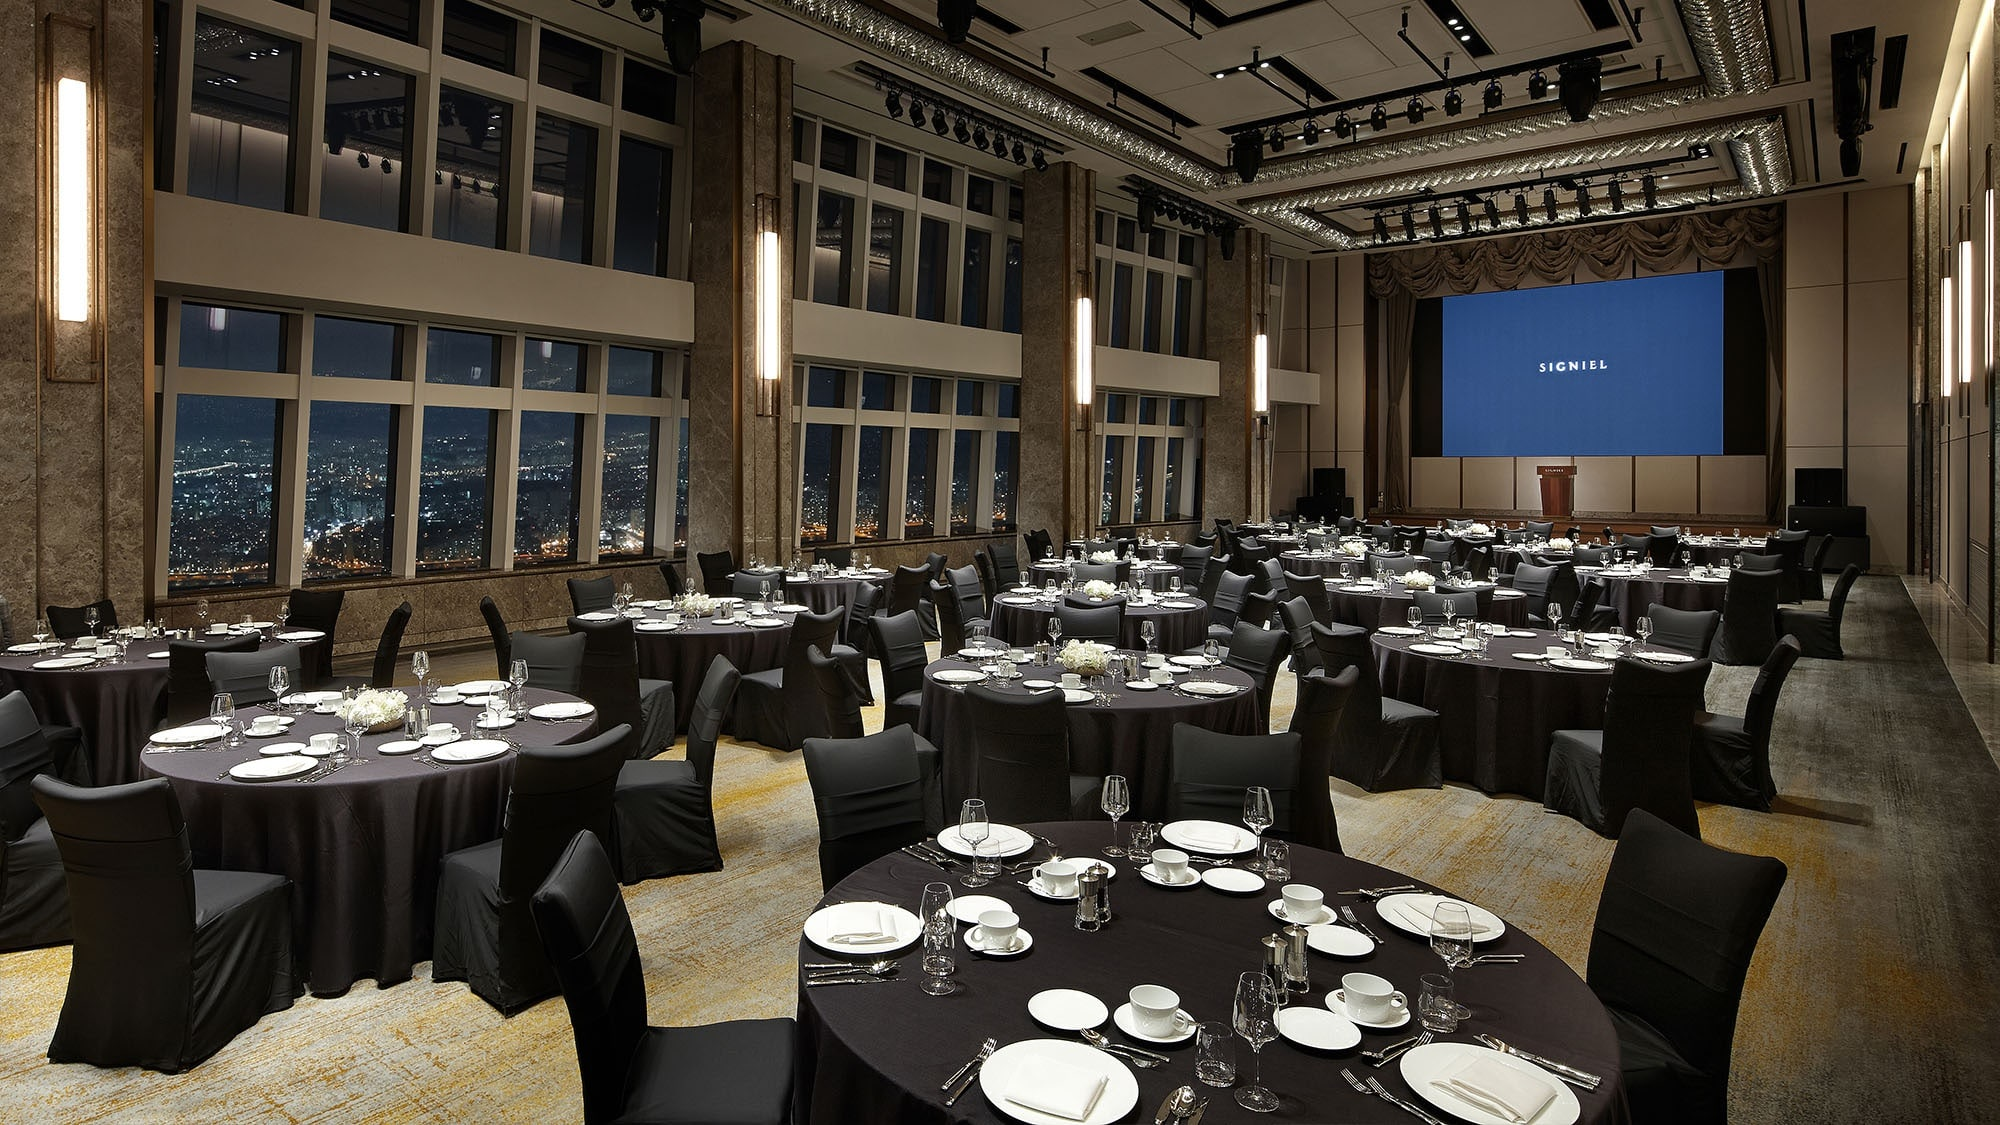 Seoul Hotel Meeting rooms, Wedding venues, Banquet Halls